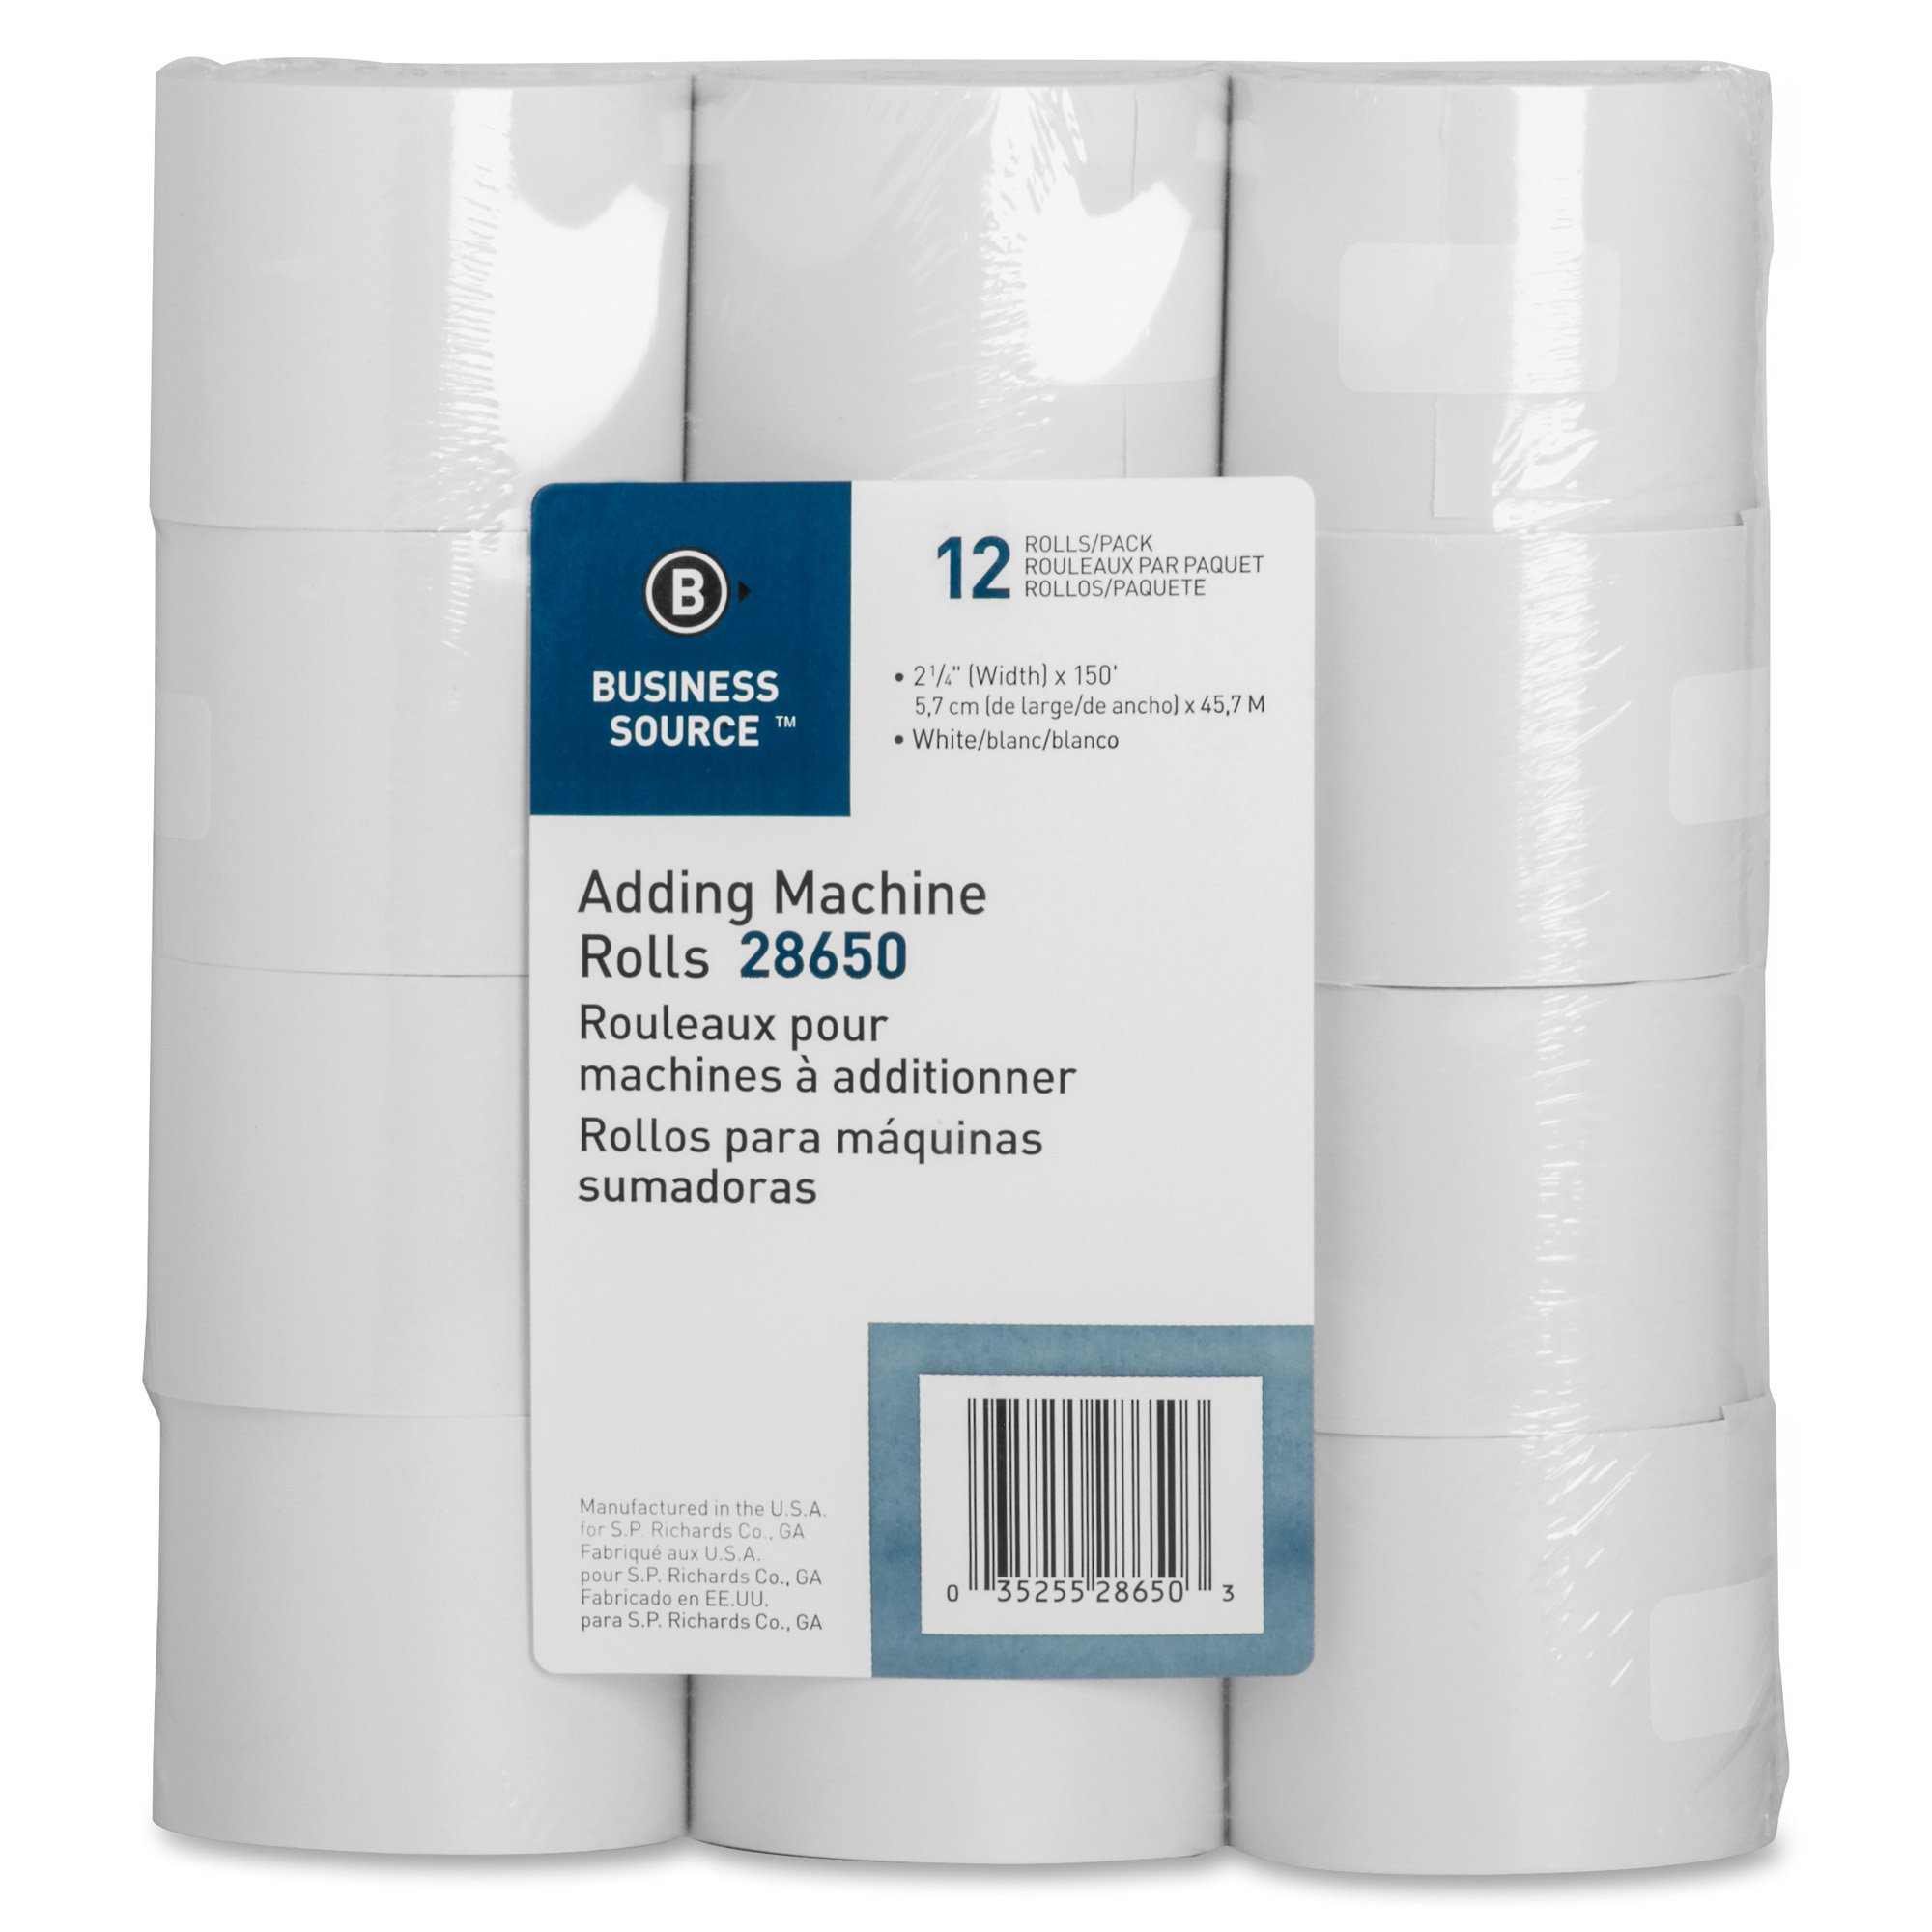 Business Source Receipt Paper 2.25 Inch x 150 Pack of 12 Rolls - White (28650) by Business Source